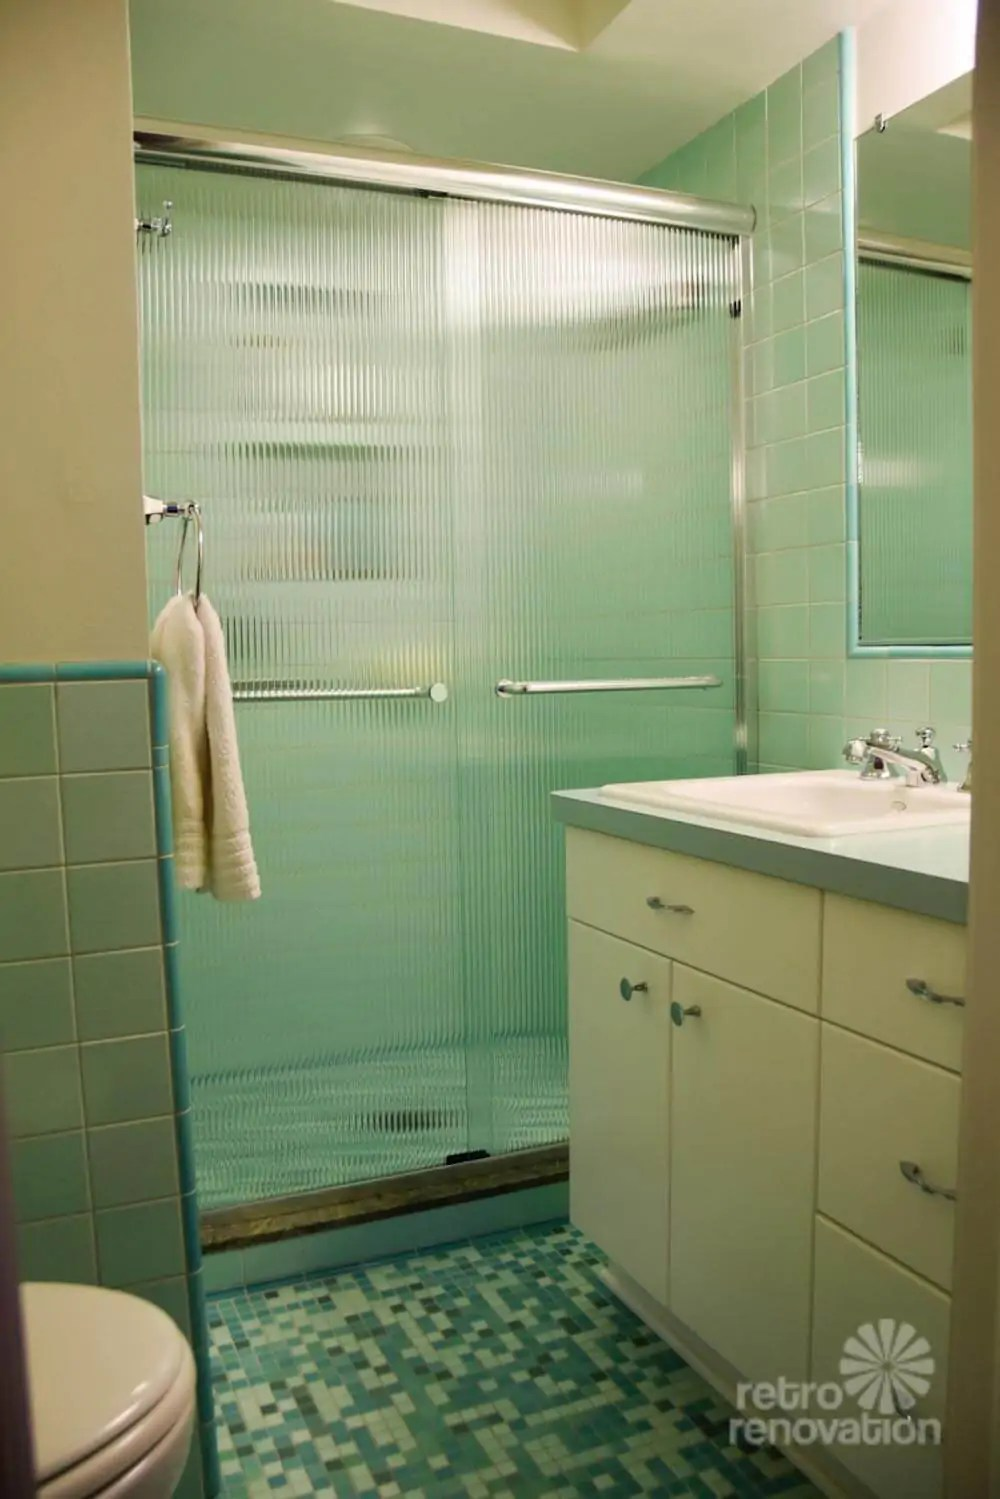 Rebeccas midcentury bathroom remodel using Nemo tiles